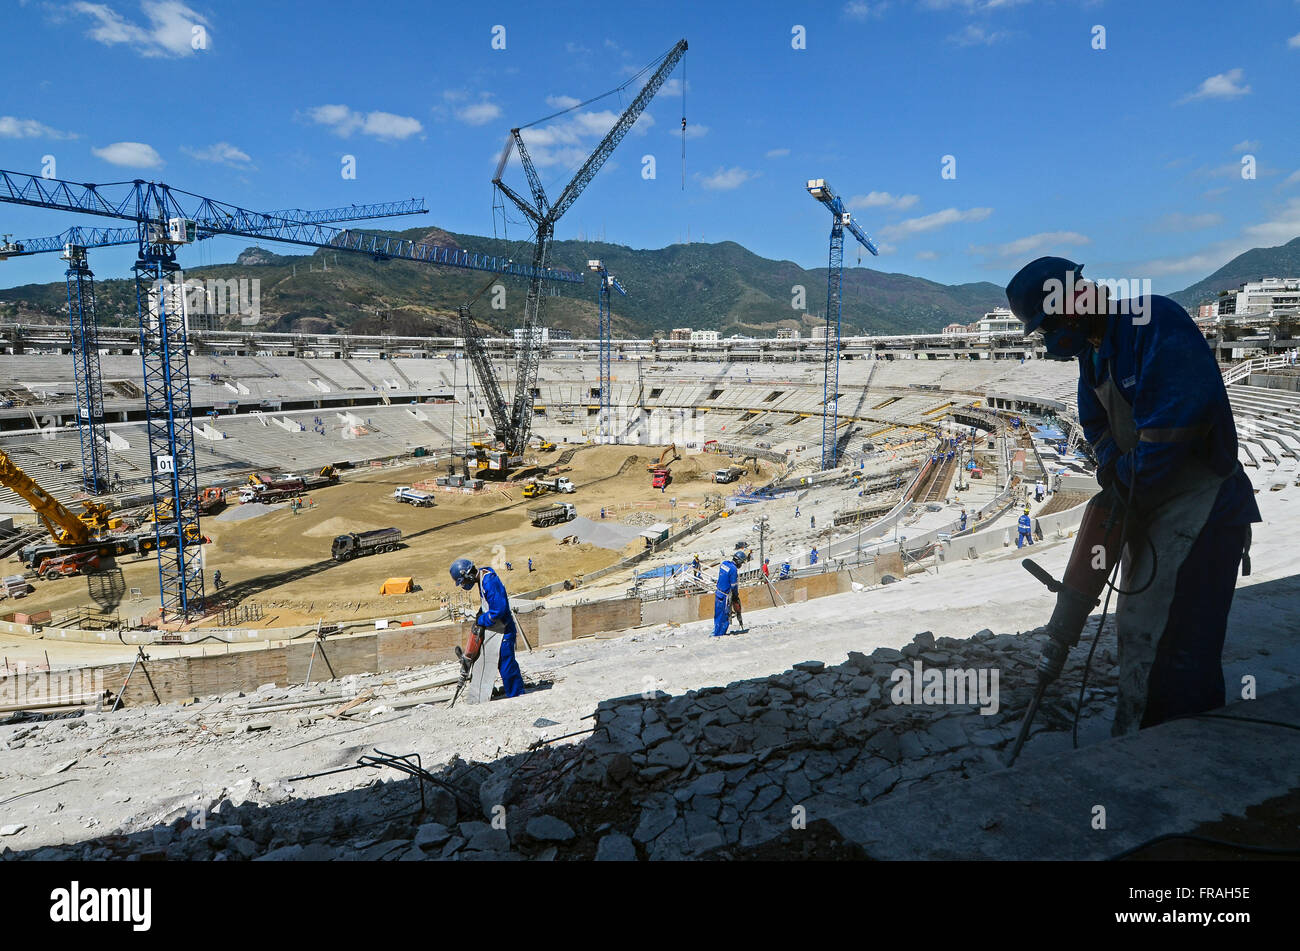 Workman with drill in the work of reforming the Estadio do Maracana for the World Cup 2014 - Stock Image